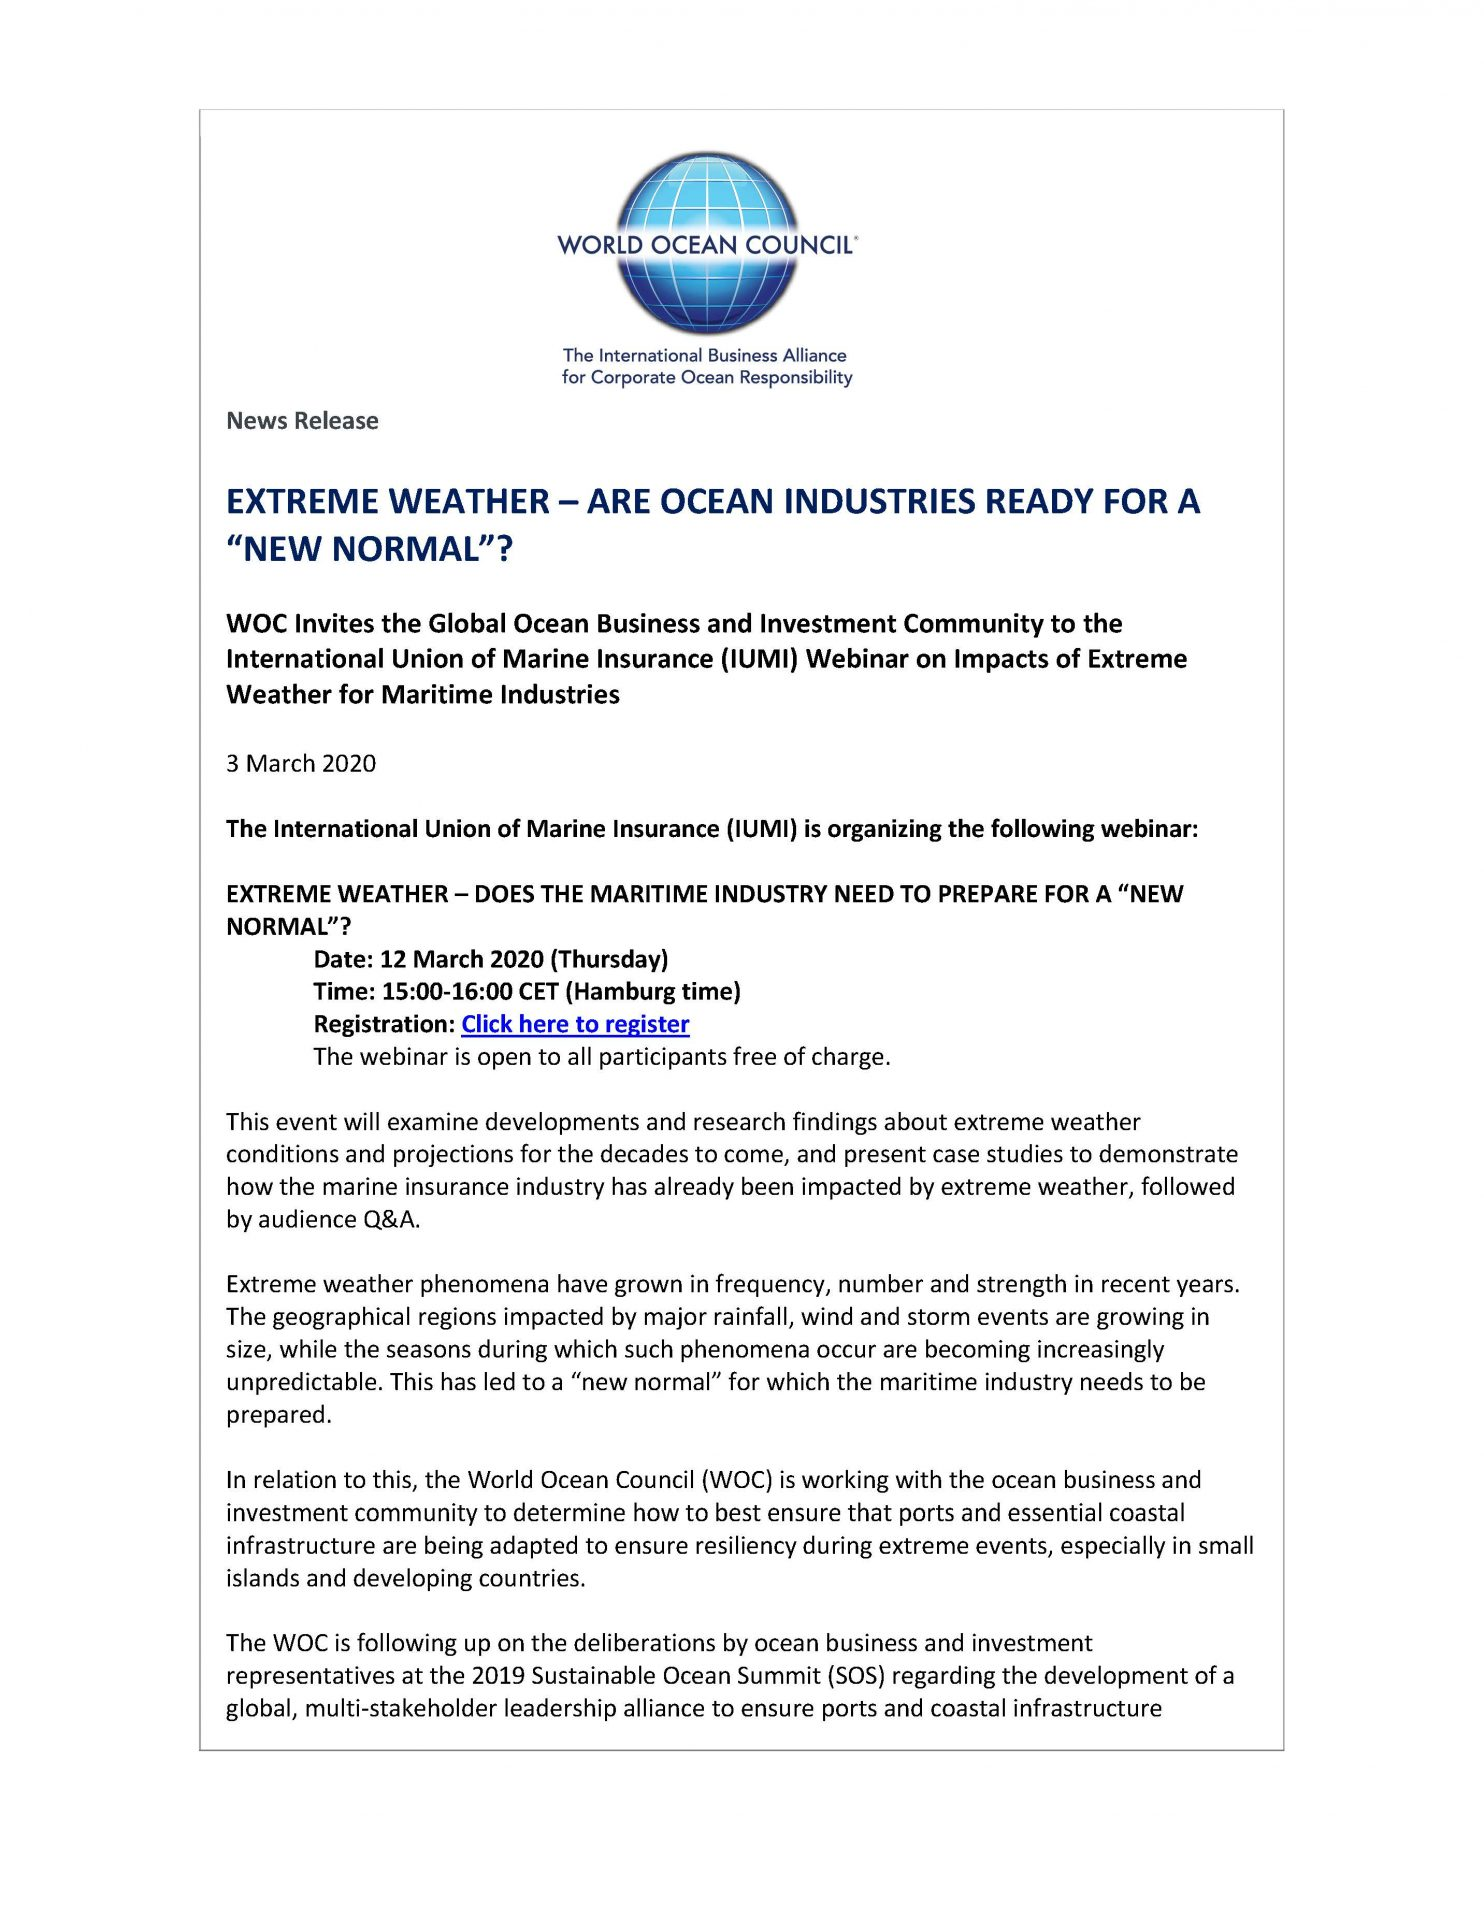 Extreme Weather Are Ocean Industries Ready For A New Normal